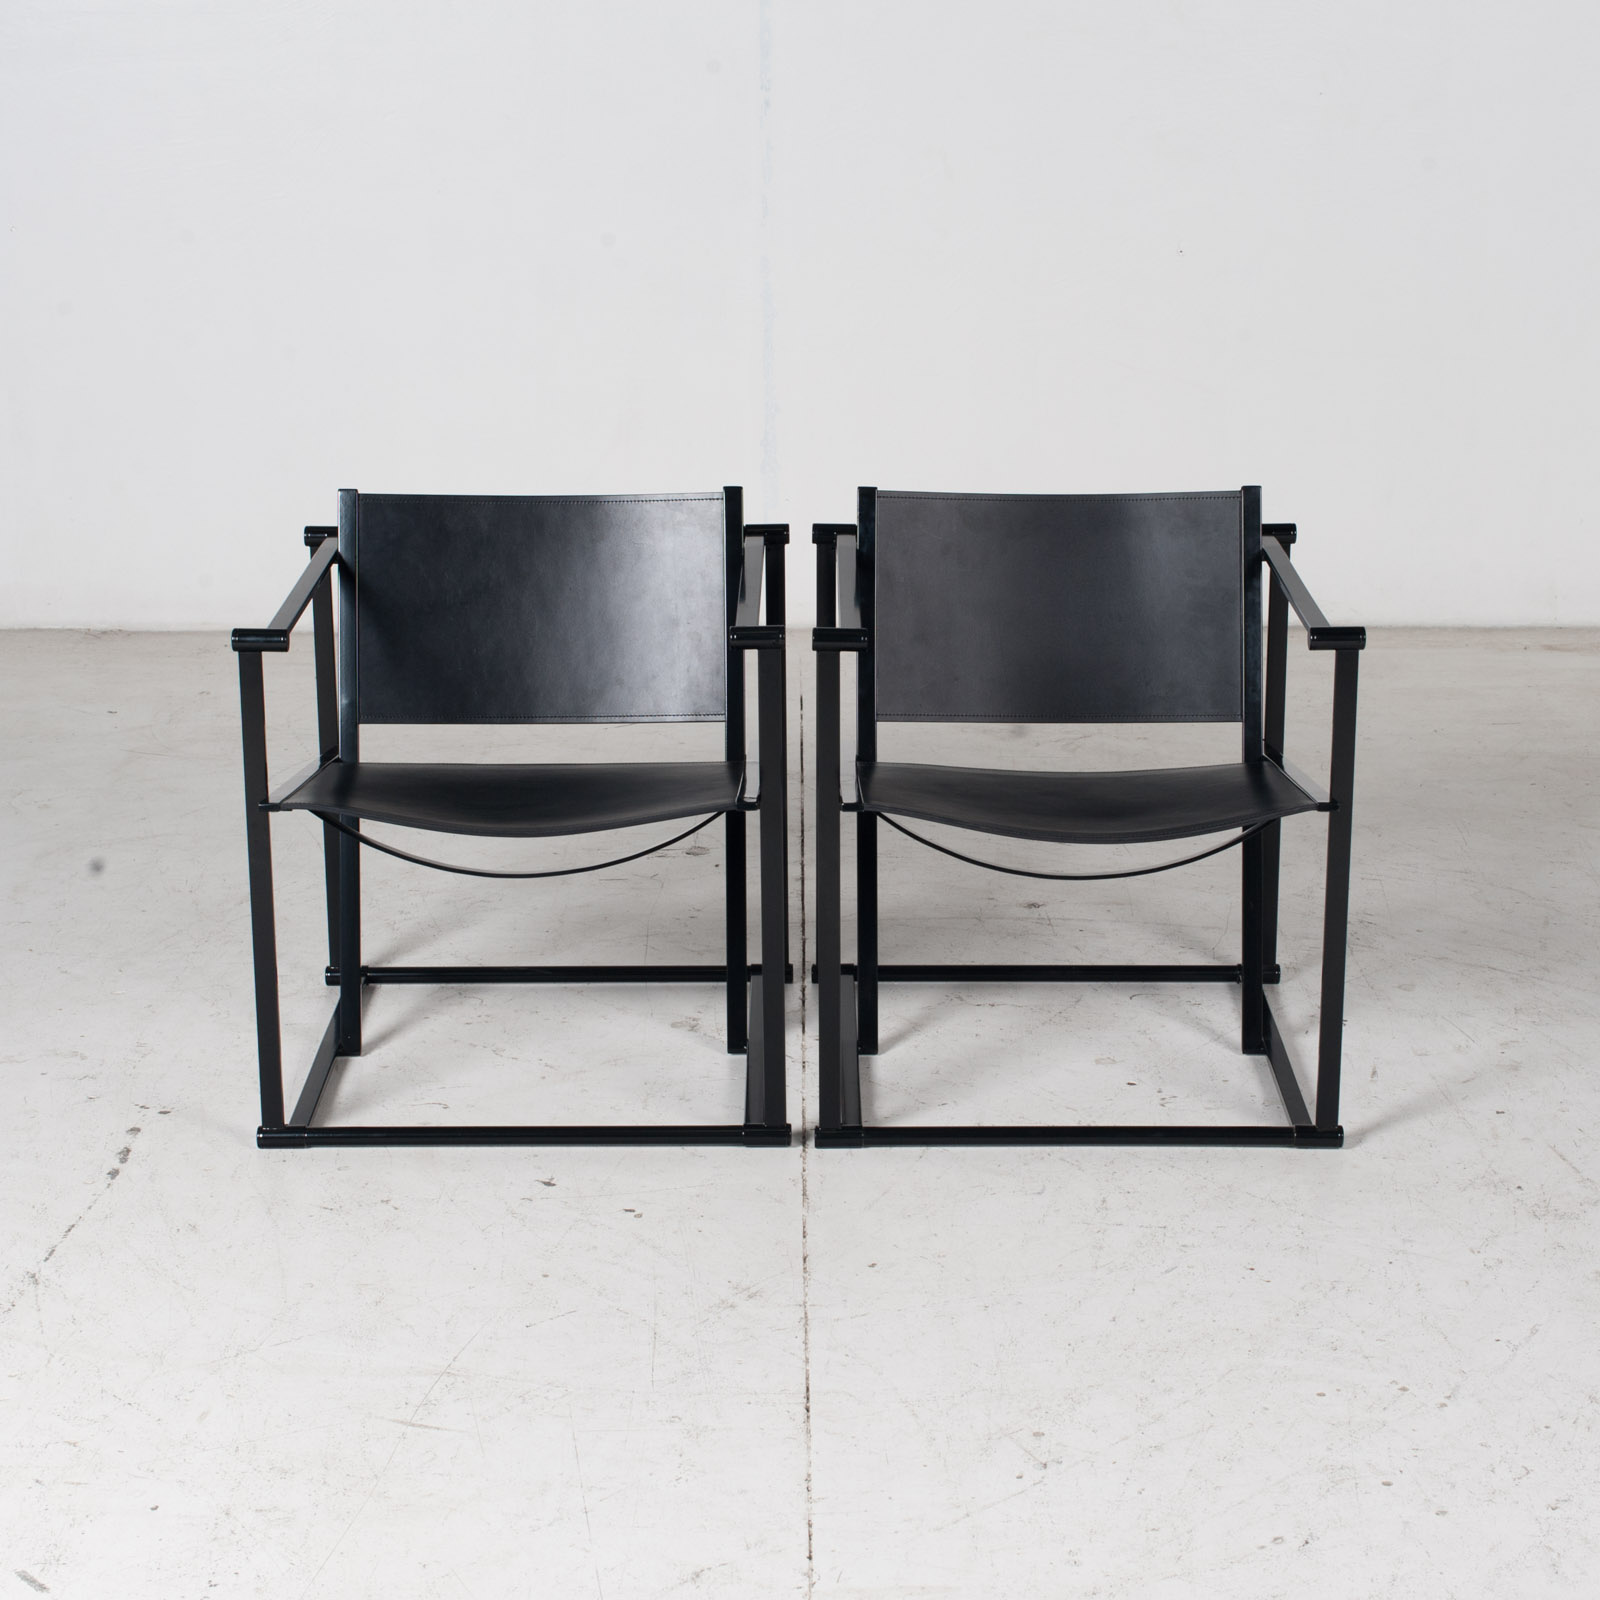 Pair Of Fm60 Cubic Chairs With Table By Radboud Van Beekum For Pastoe, 1980s, The Netherlands 13